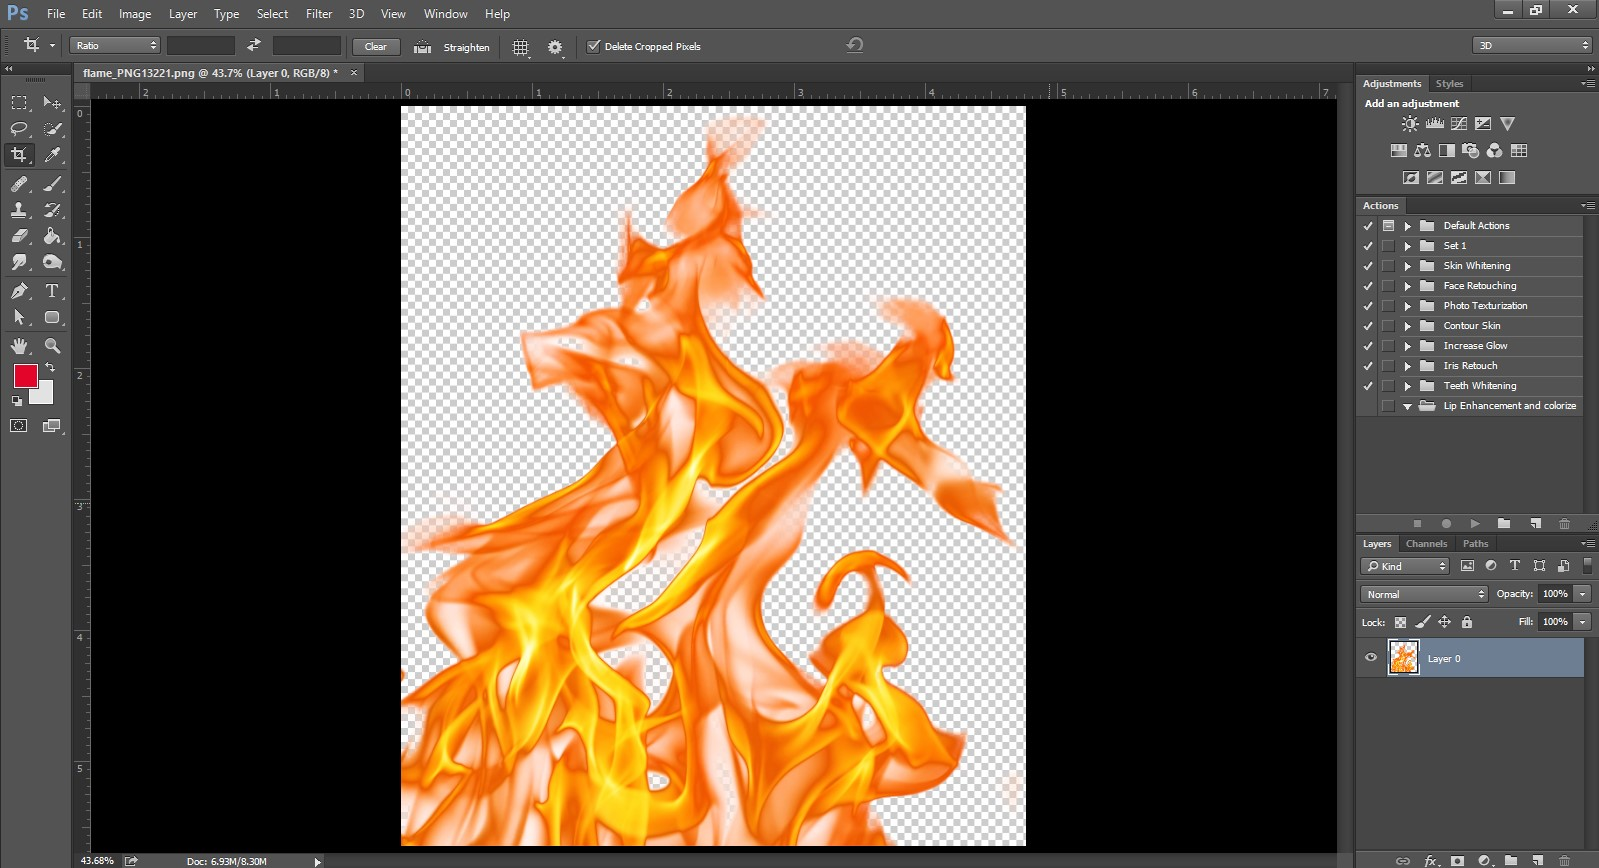 open png image in photoshop